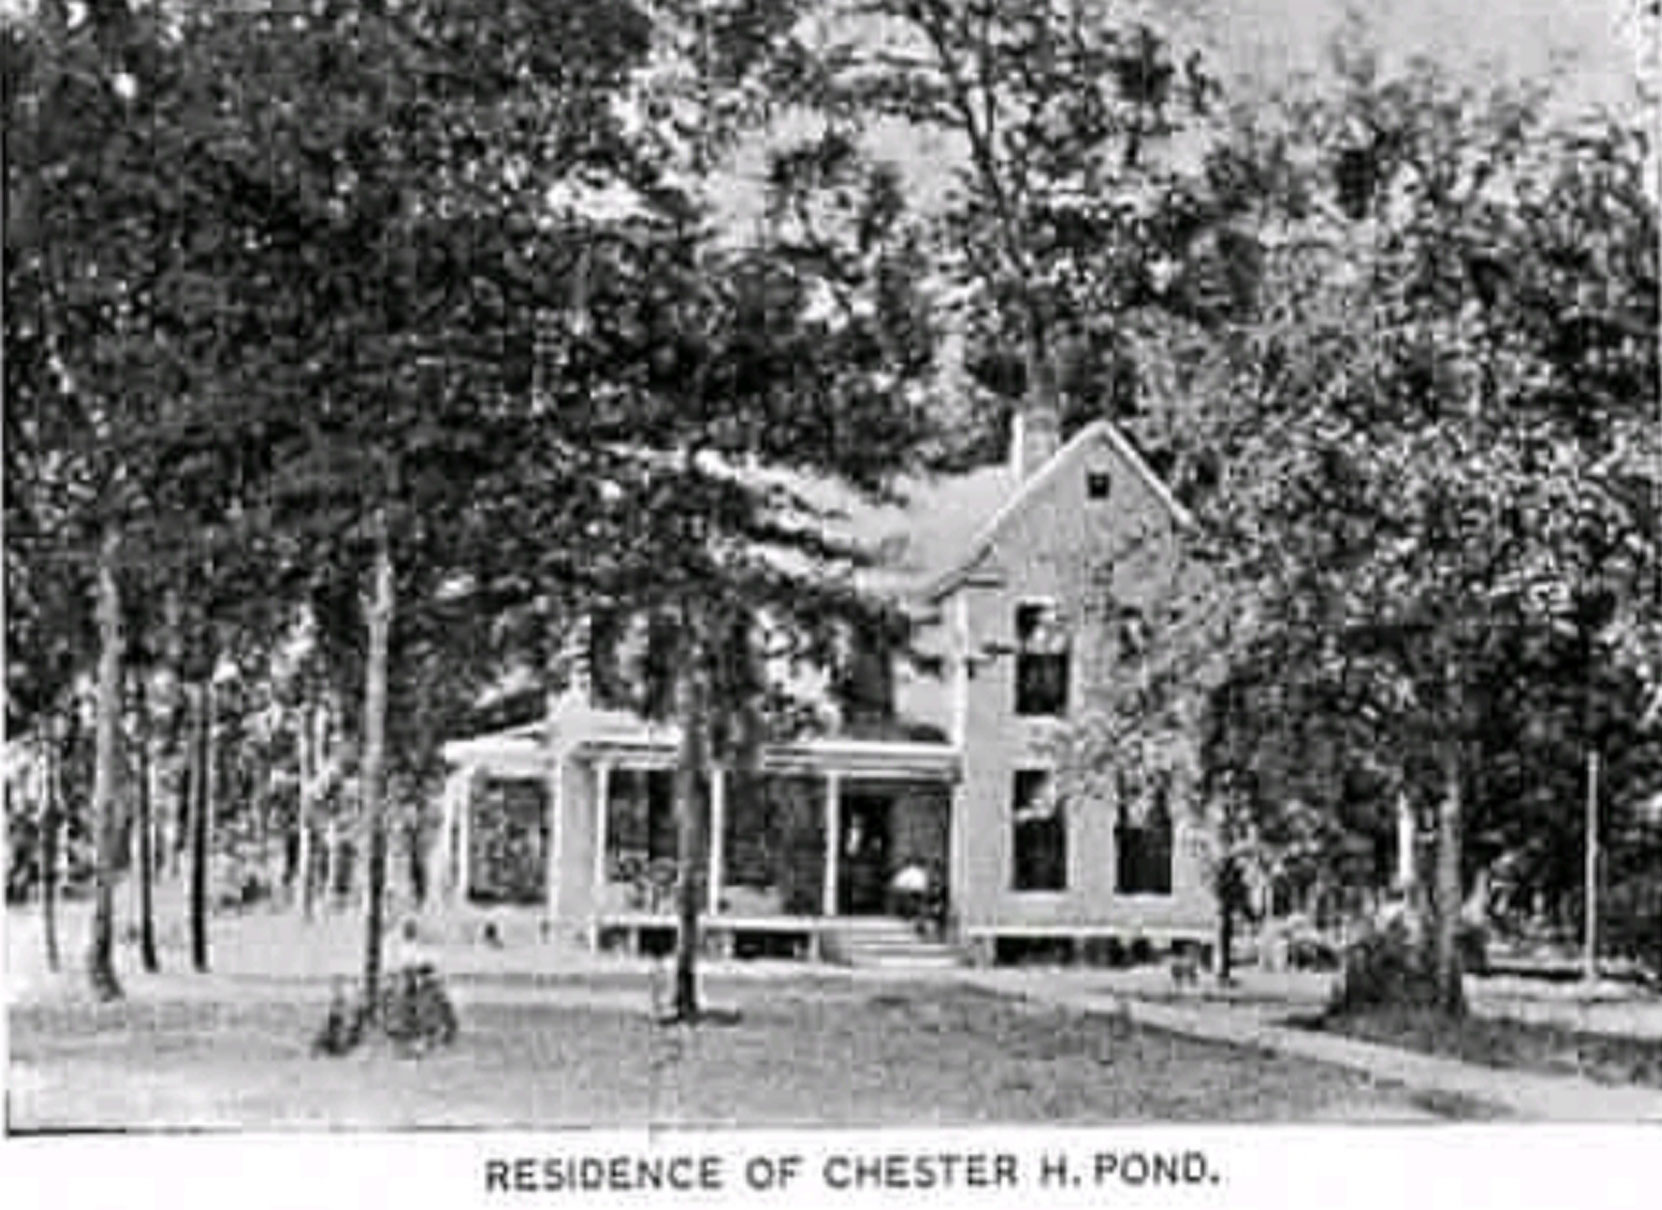 A Moorhead, MS resident sent us this photo of Chester H. Pond's house in Moorhead, Mississippi